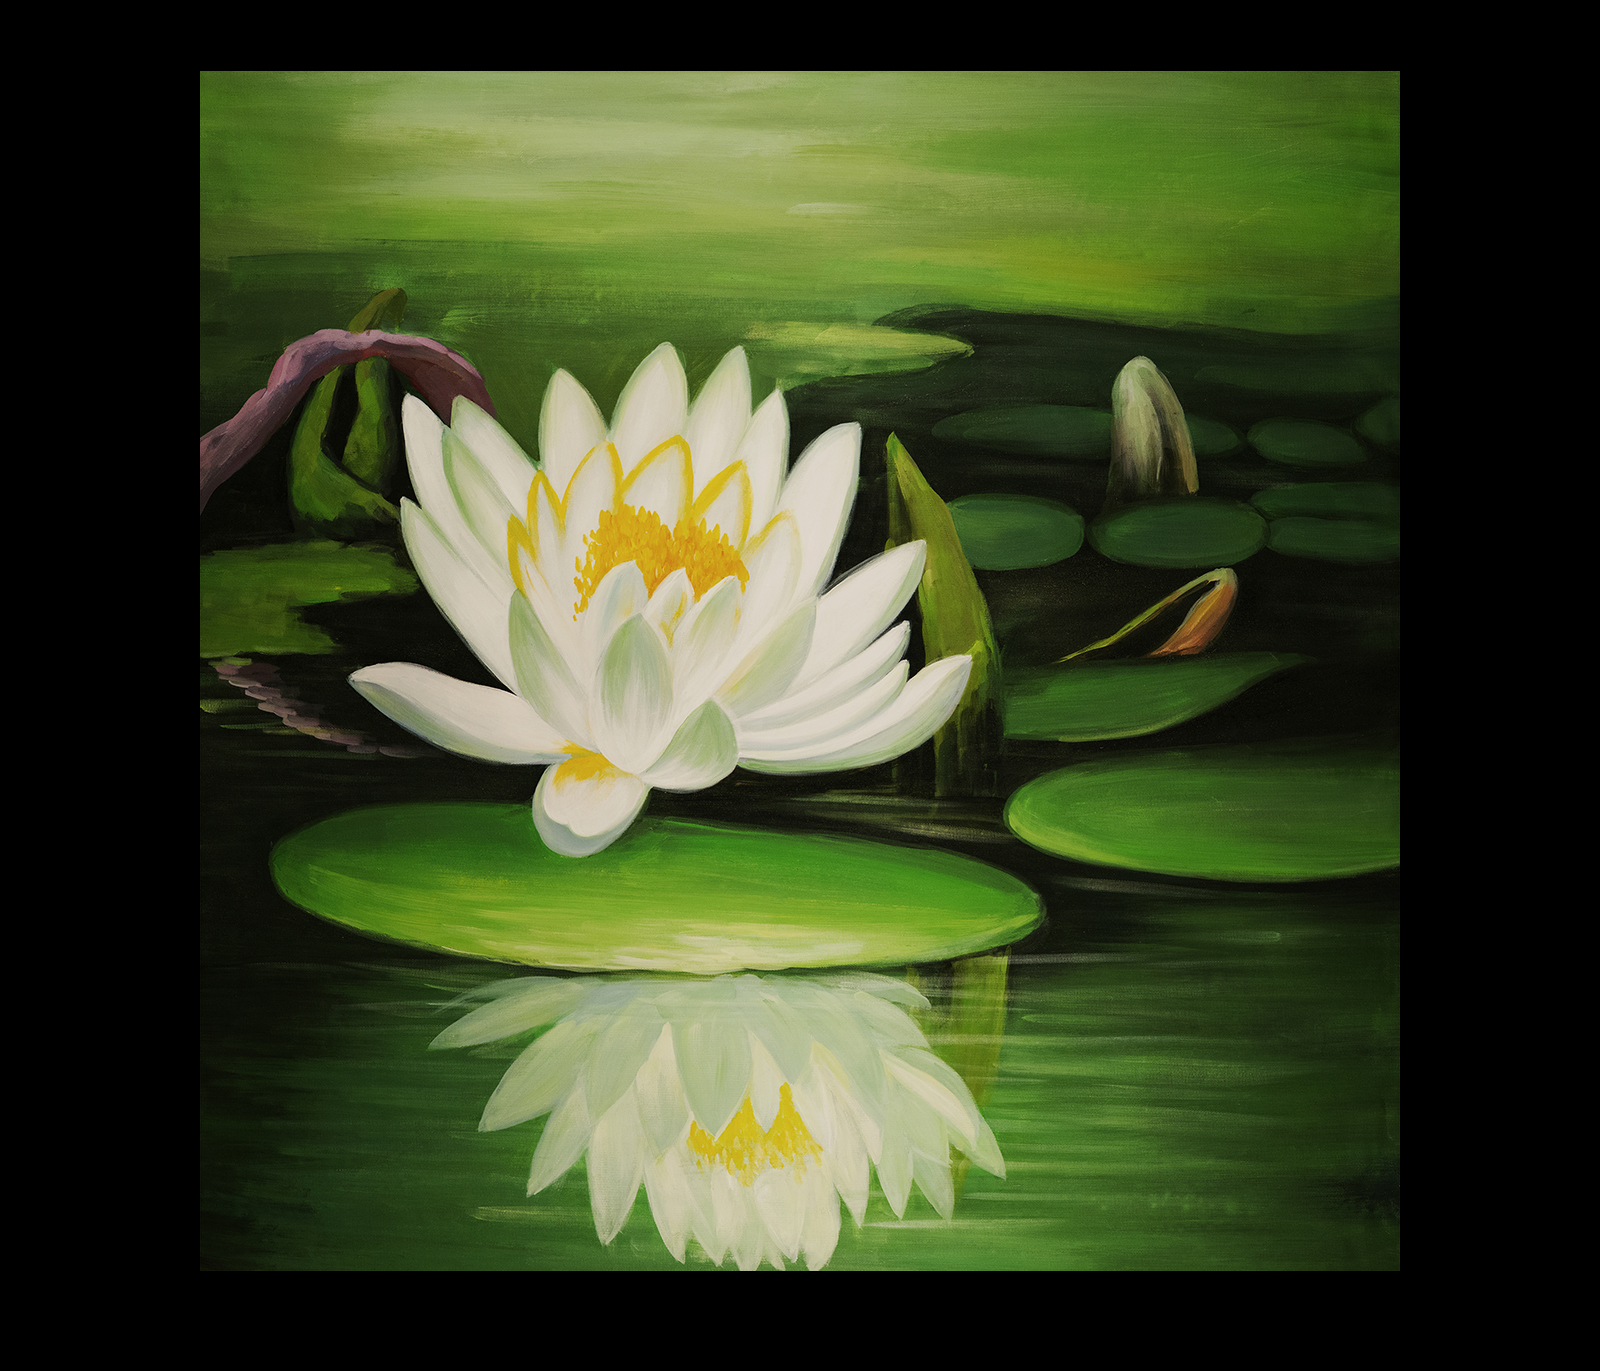 Abstract Lotus Flower Painting